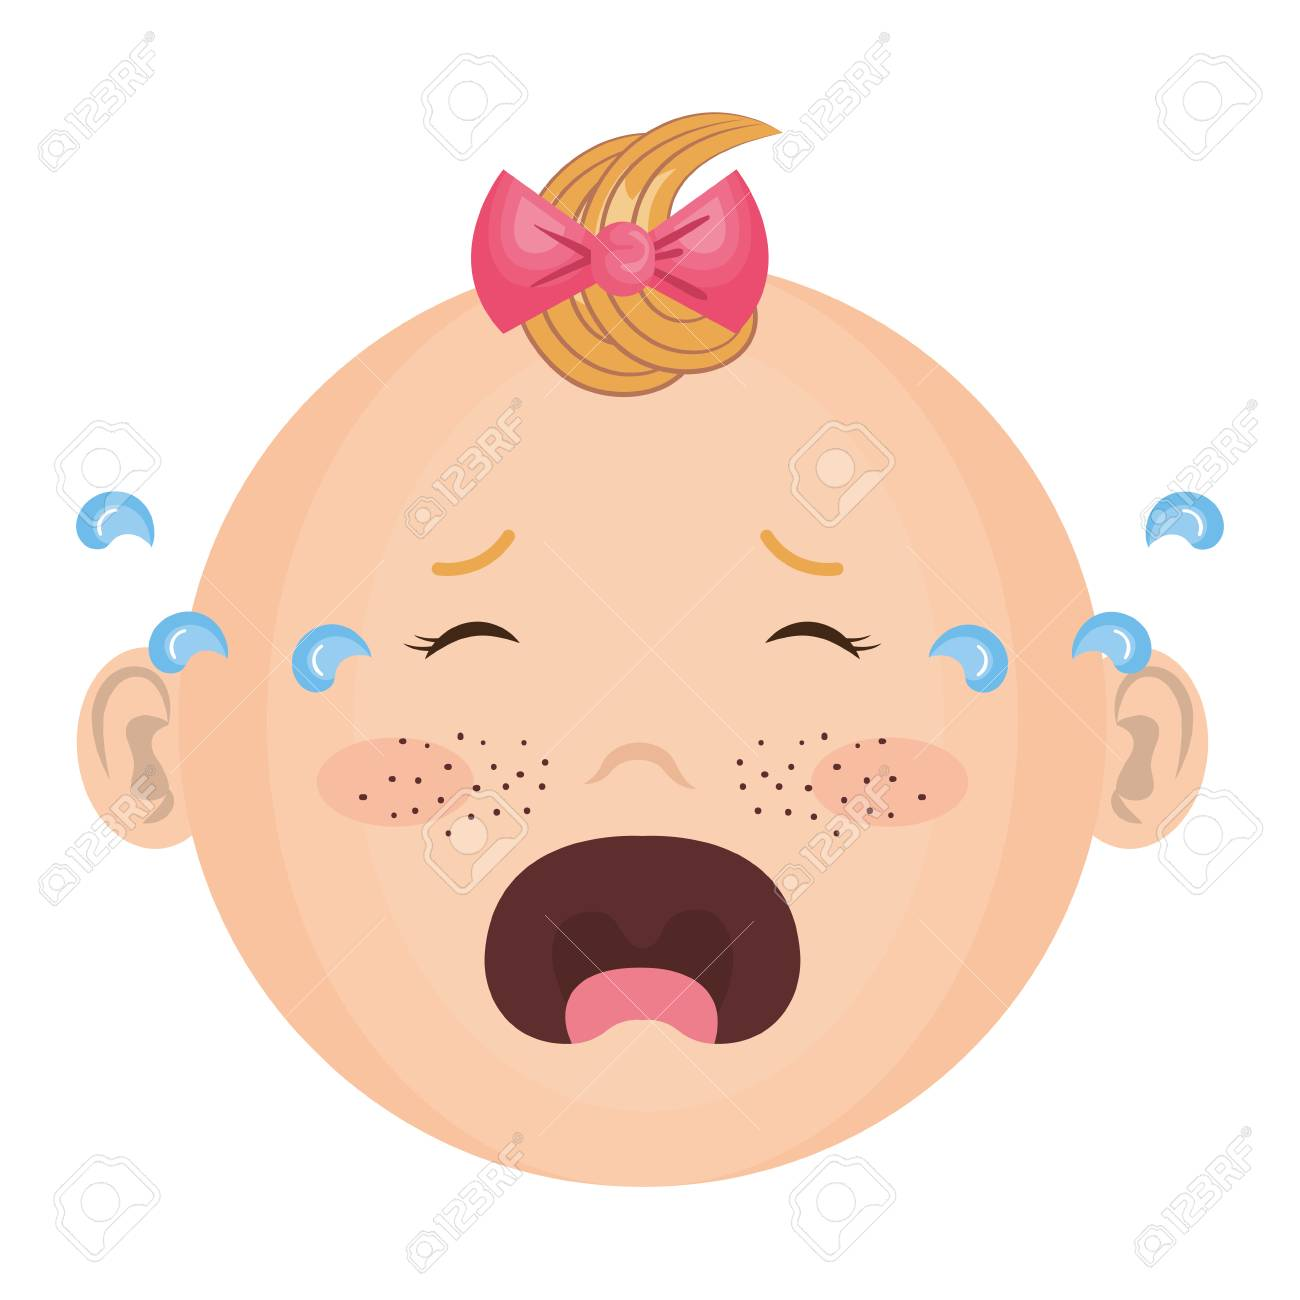 Free Crying Face Clipart, Download Free Clip Art, Free Clip Art on Clipart  Library